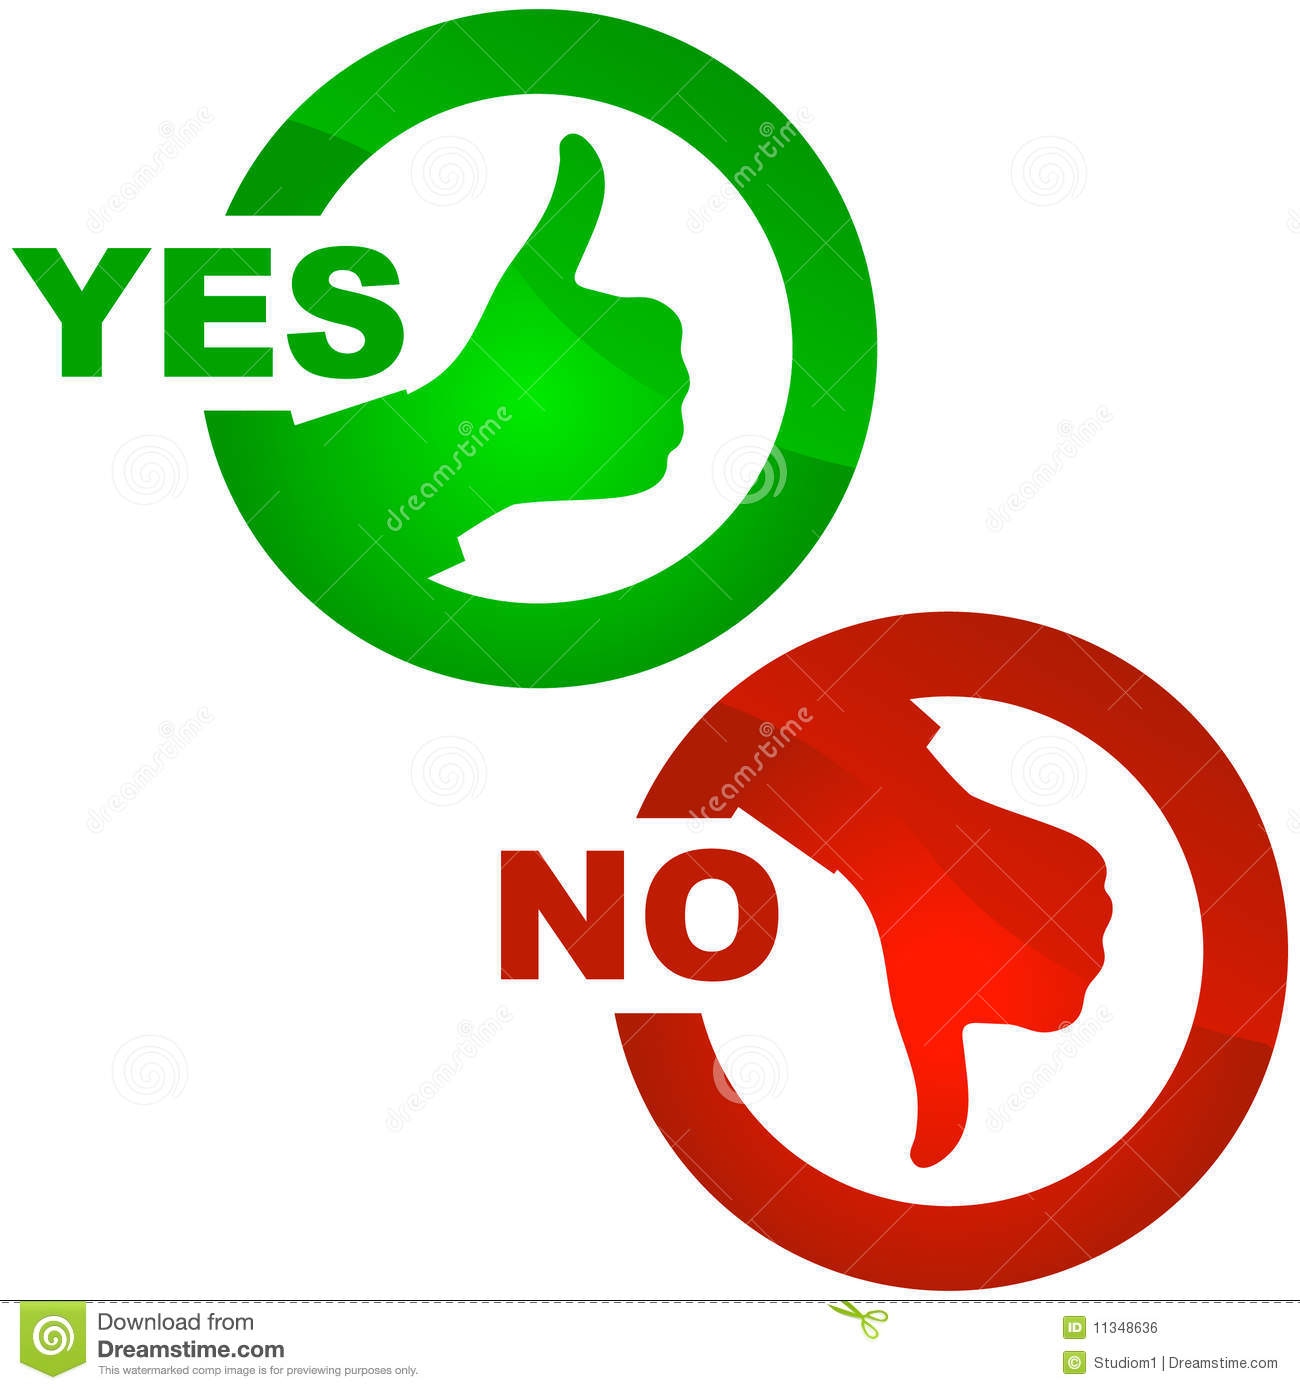 Yes and No Clip Art | Clip art, Special education classroom, Teacher clipart